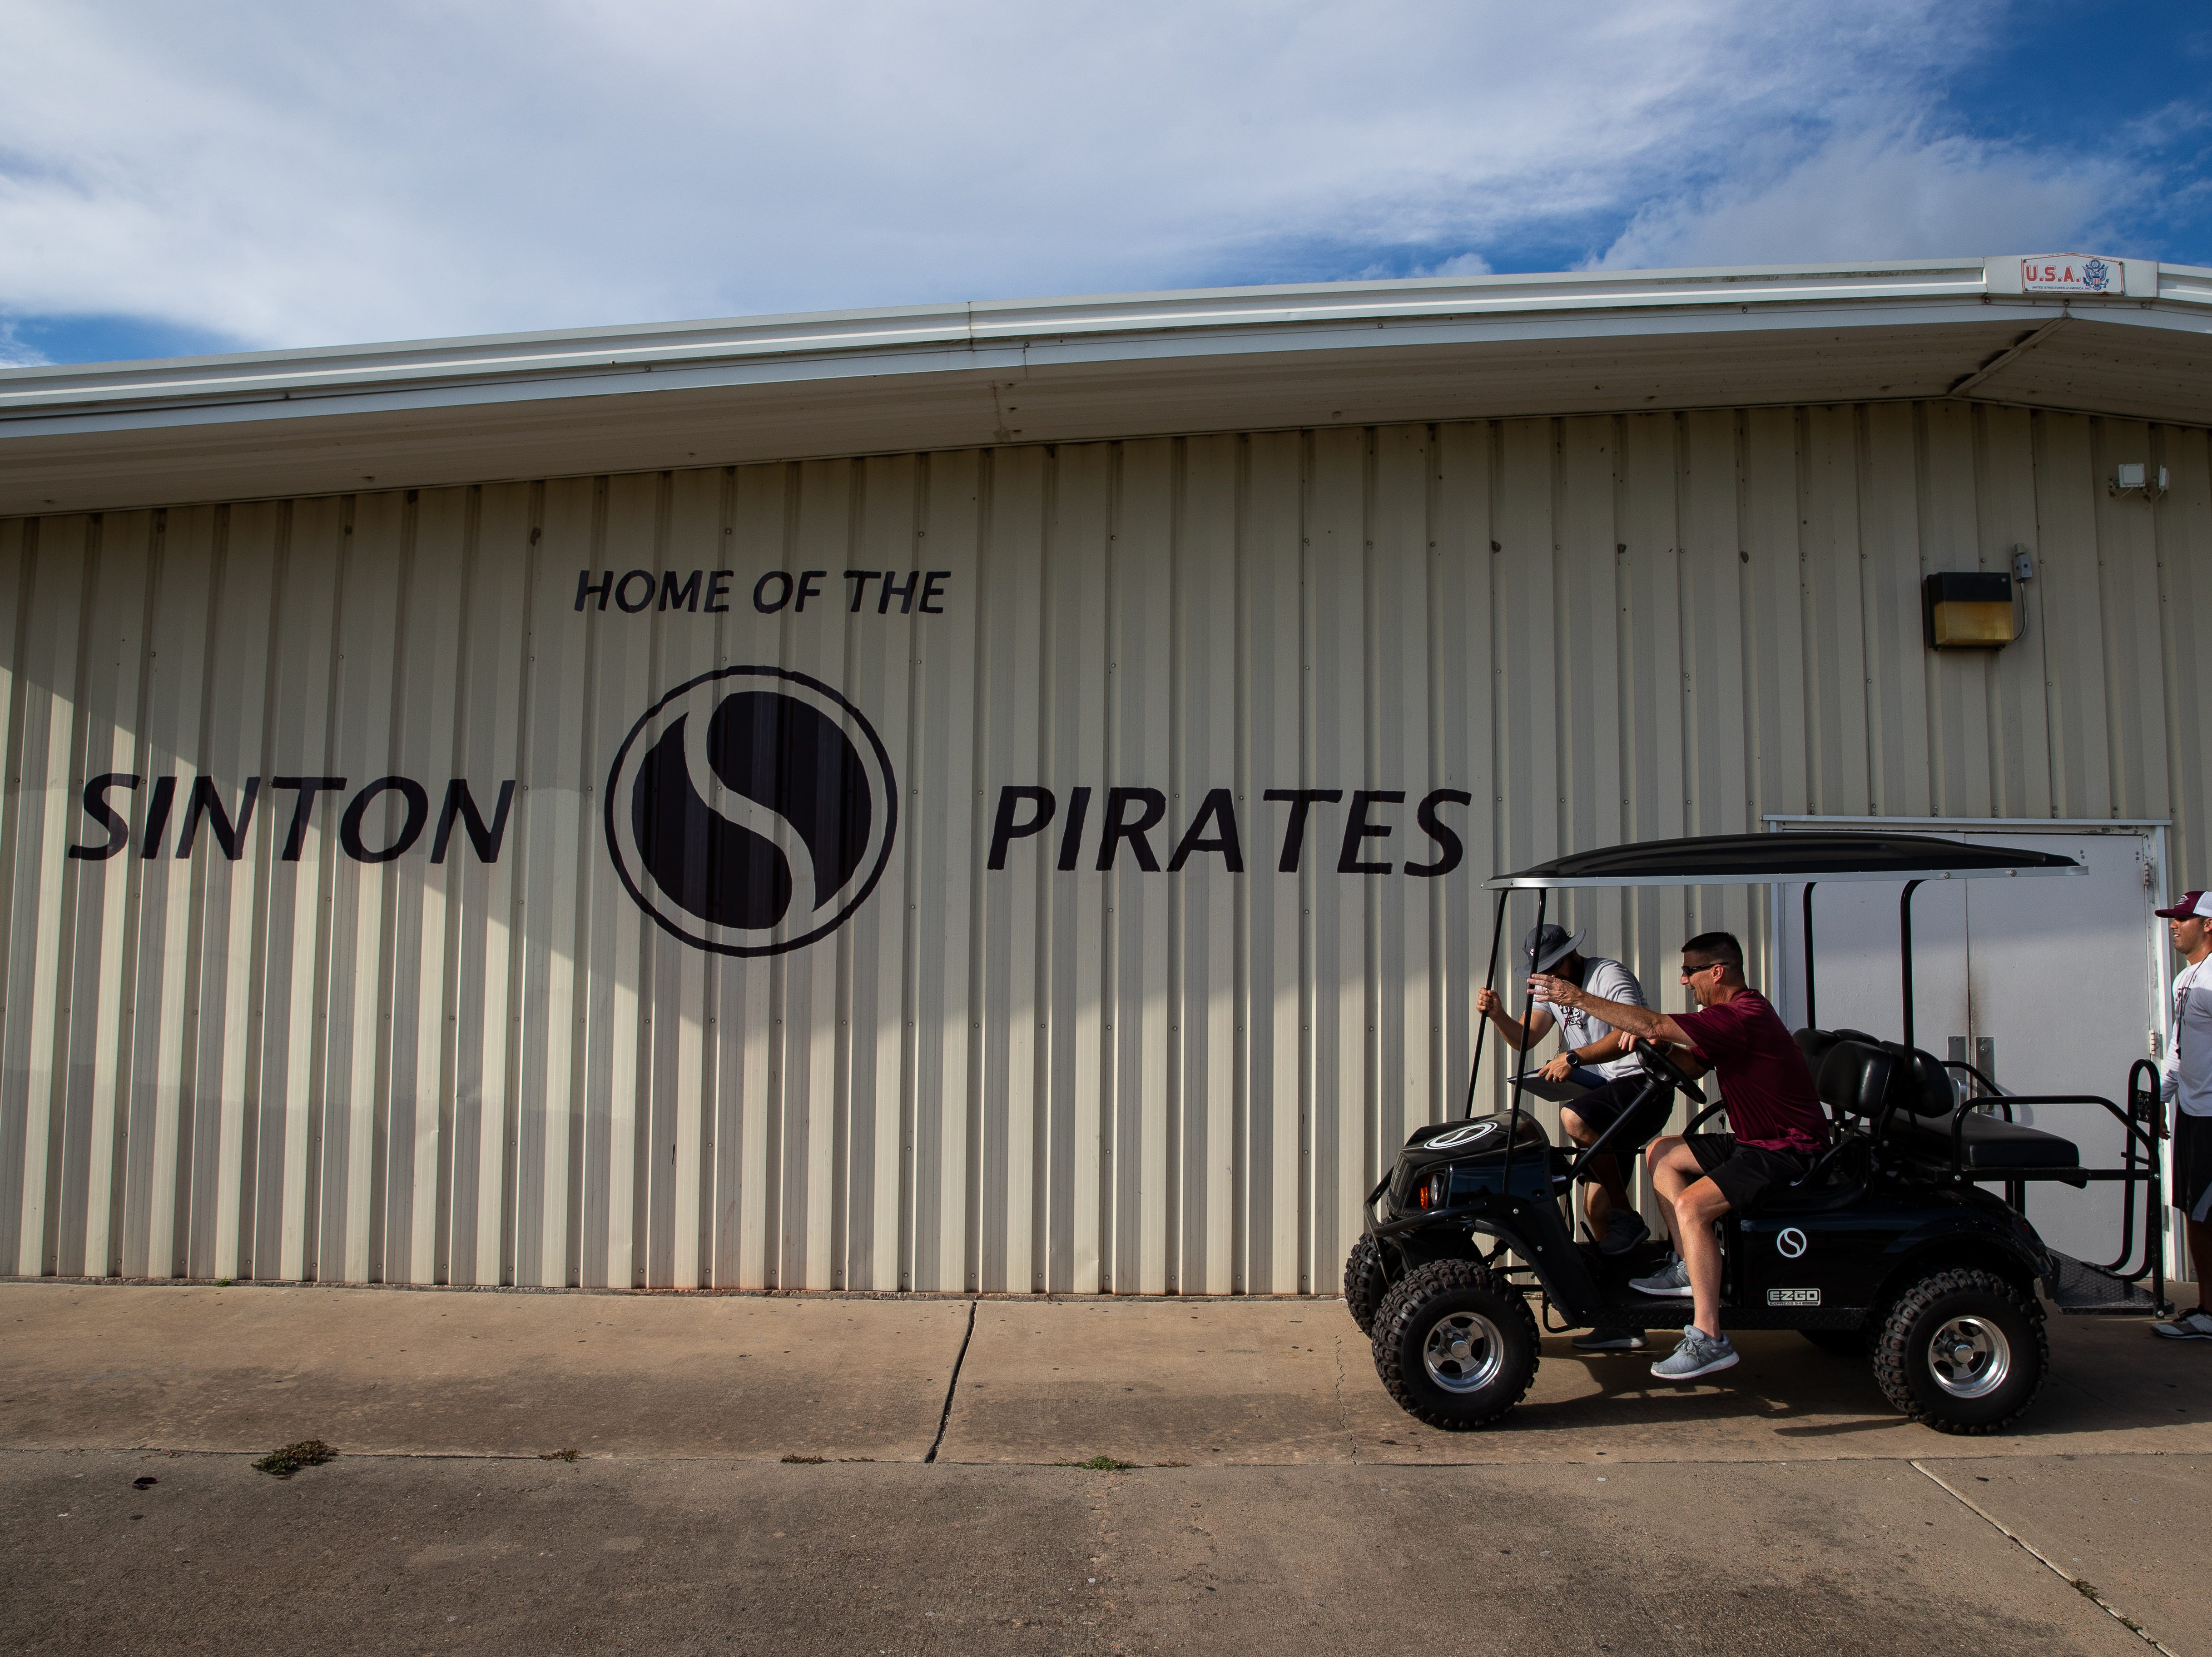 Tom Allen head coach of the Sinton football team and his assistant coaches pull up to the teams field house during practice at Sinton High School on Tuesday, Sept. 18, 2018. Allen is suffering from a rare neurological disease that has him in a cart during games and practices